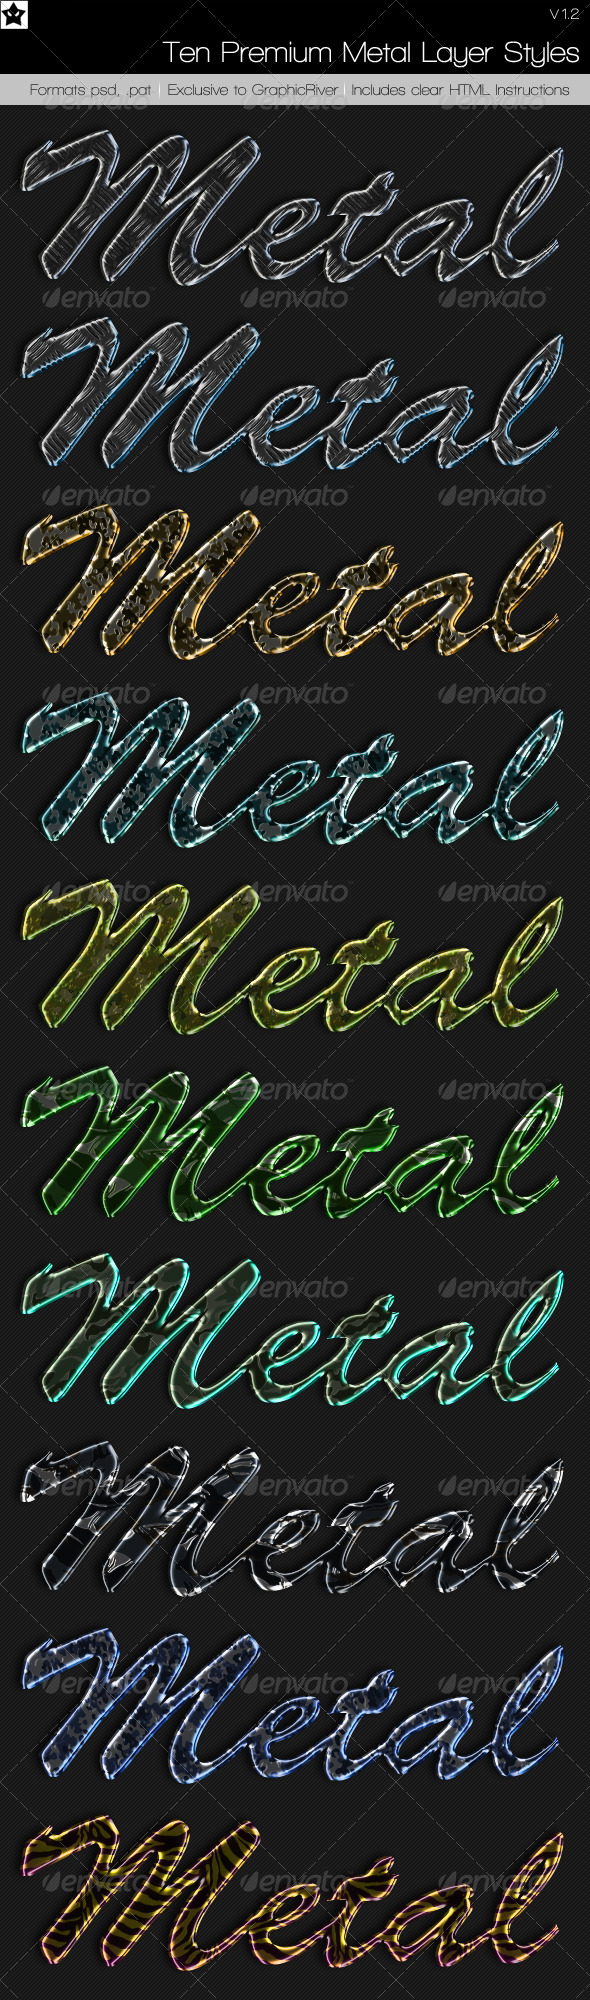 10 Premium Metal Layer Styles - Text Effects Styles